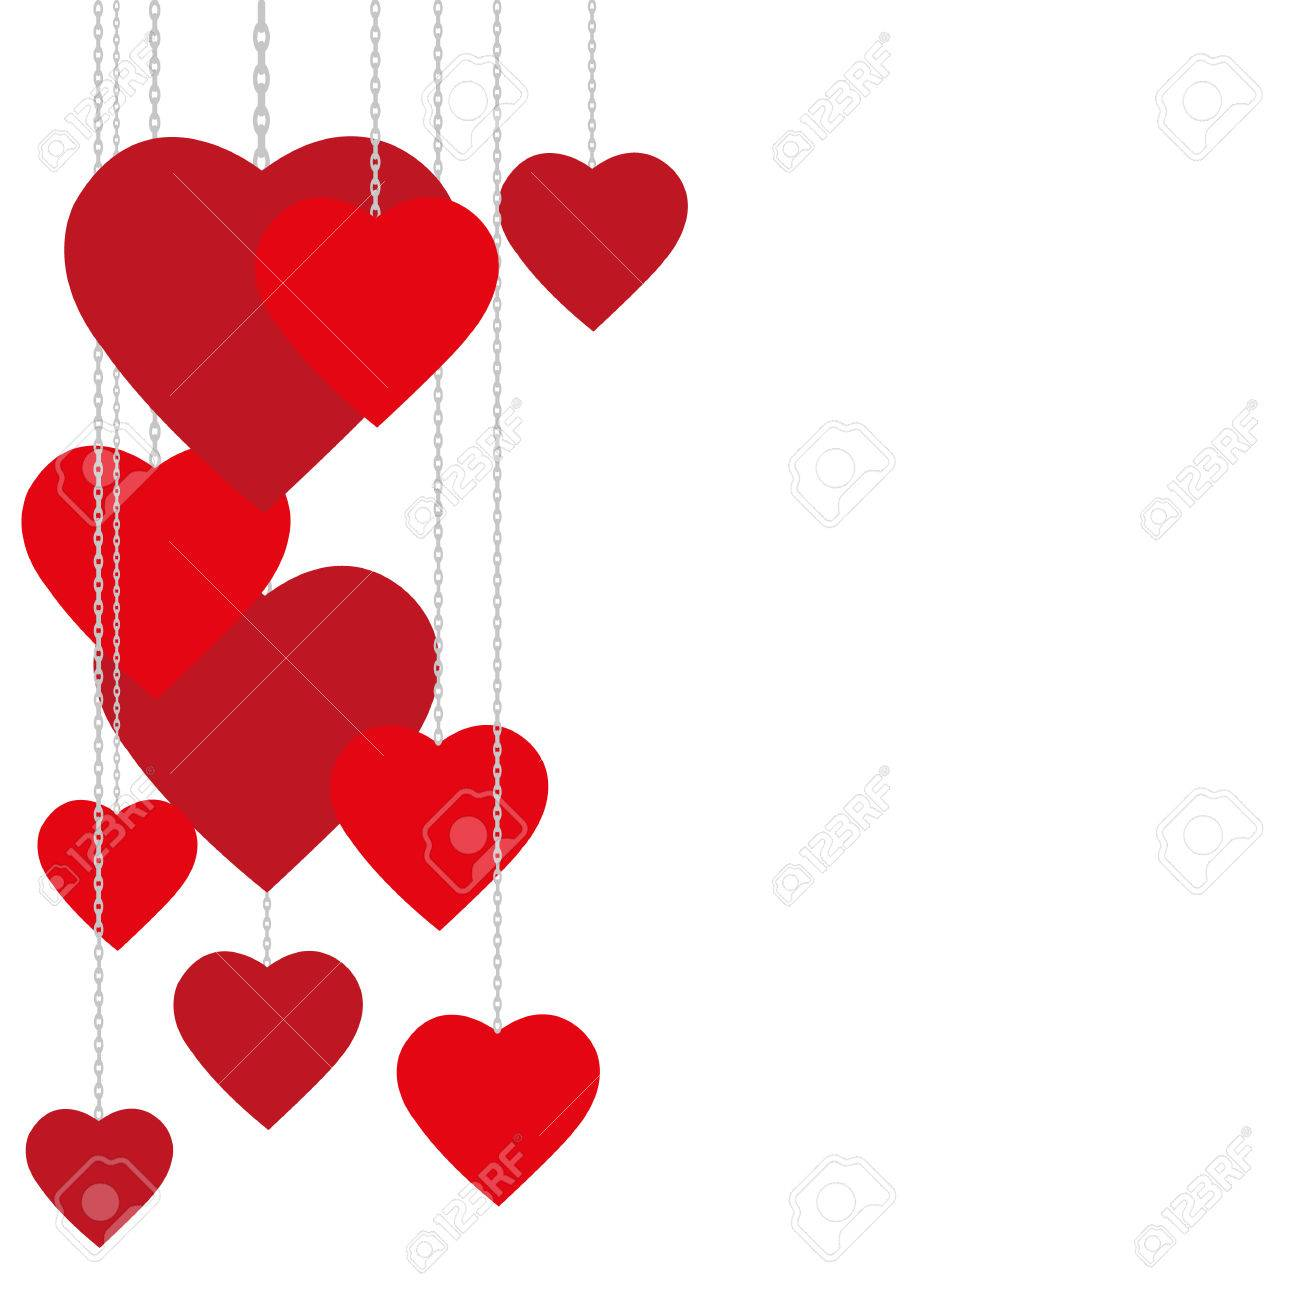 Valentine Day Nice Love Heart Greeting Royalty Free Cliparts Vectors And Stock Illustration Image 36176509